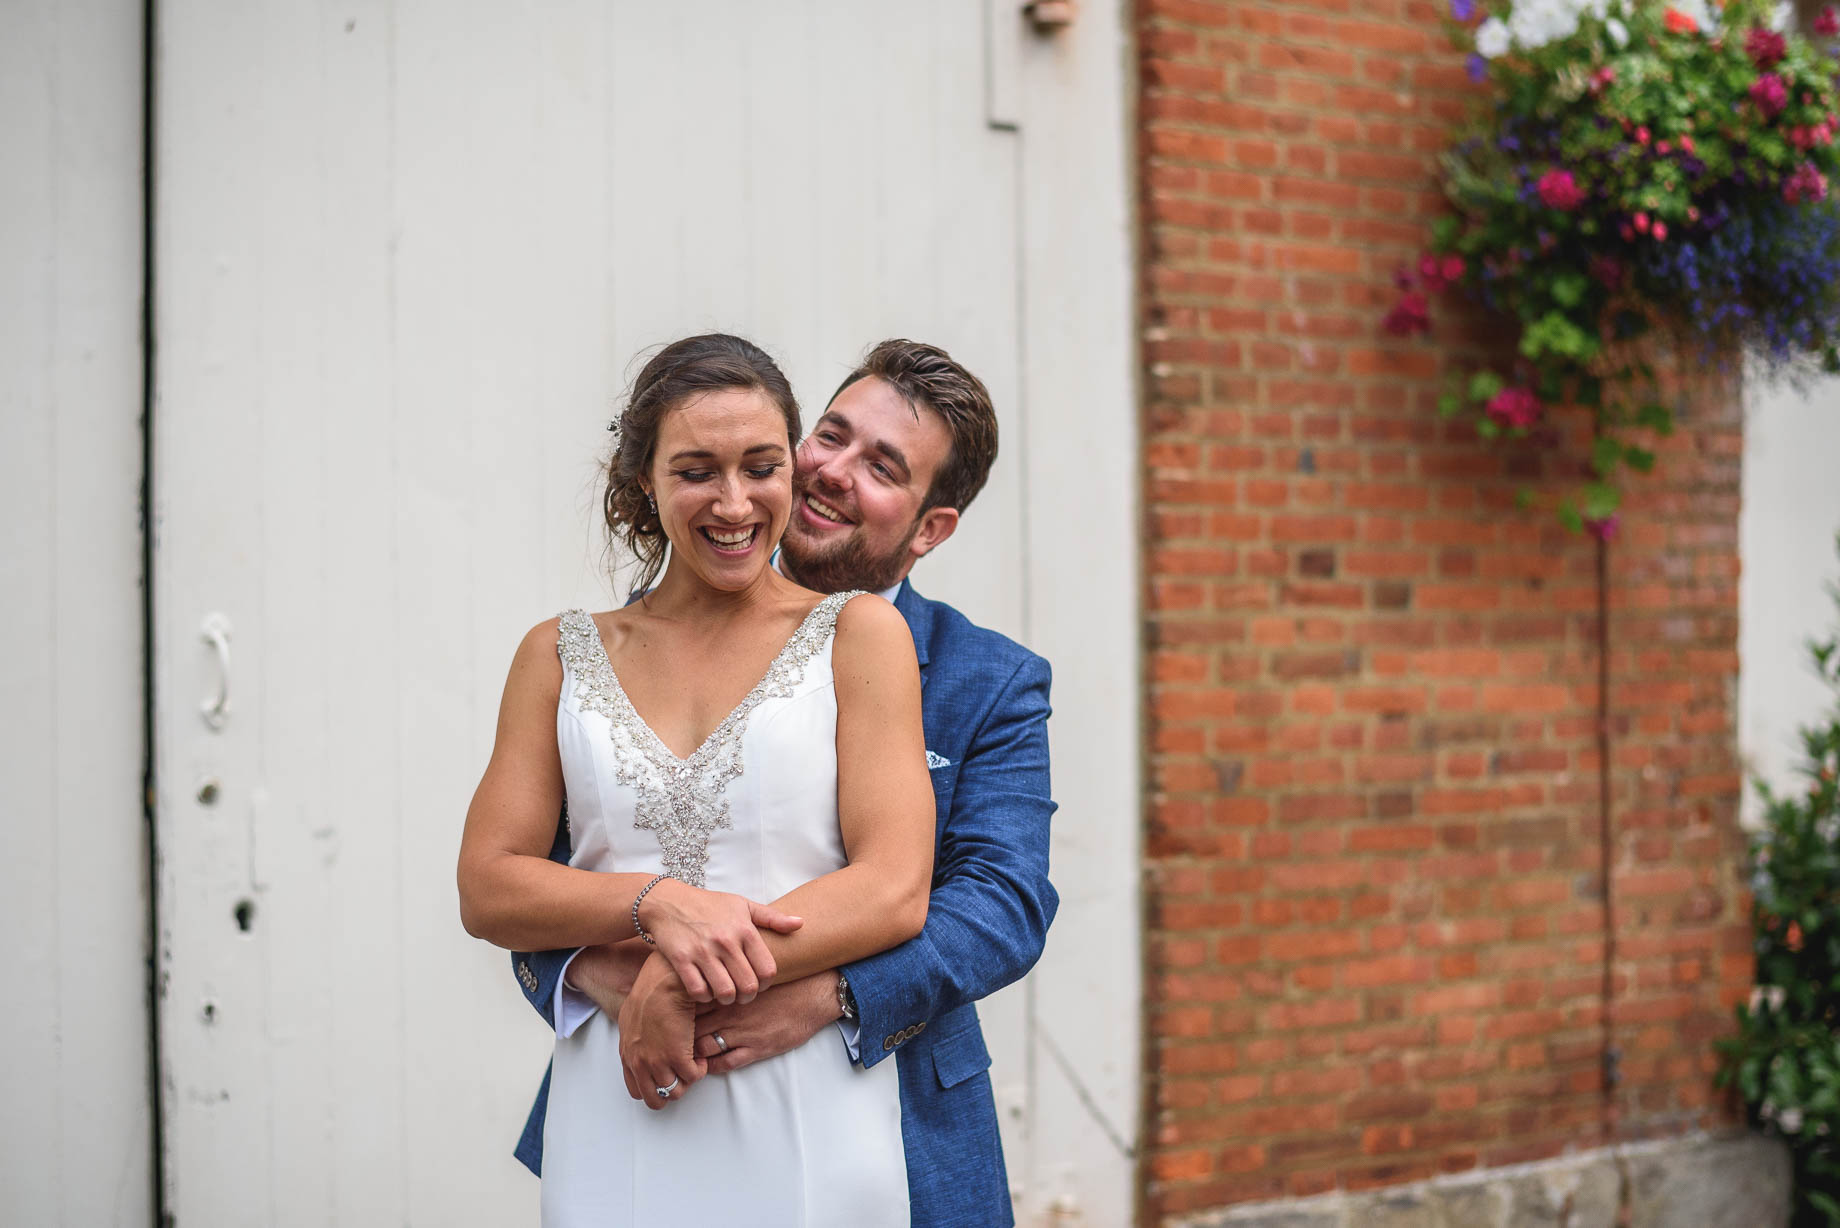 Farnham Castle wedding photography - Paulette + Laurence